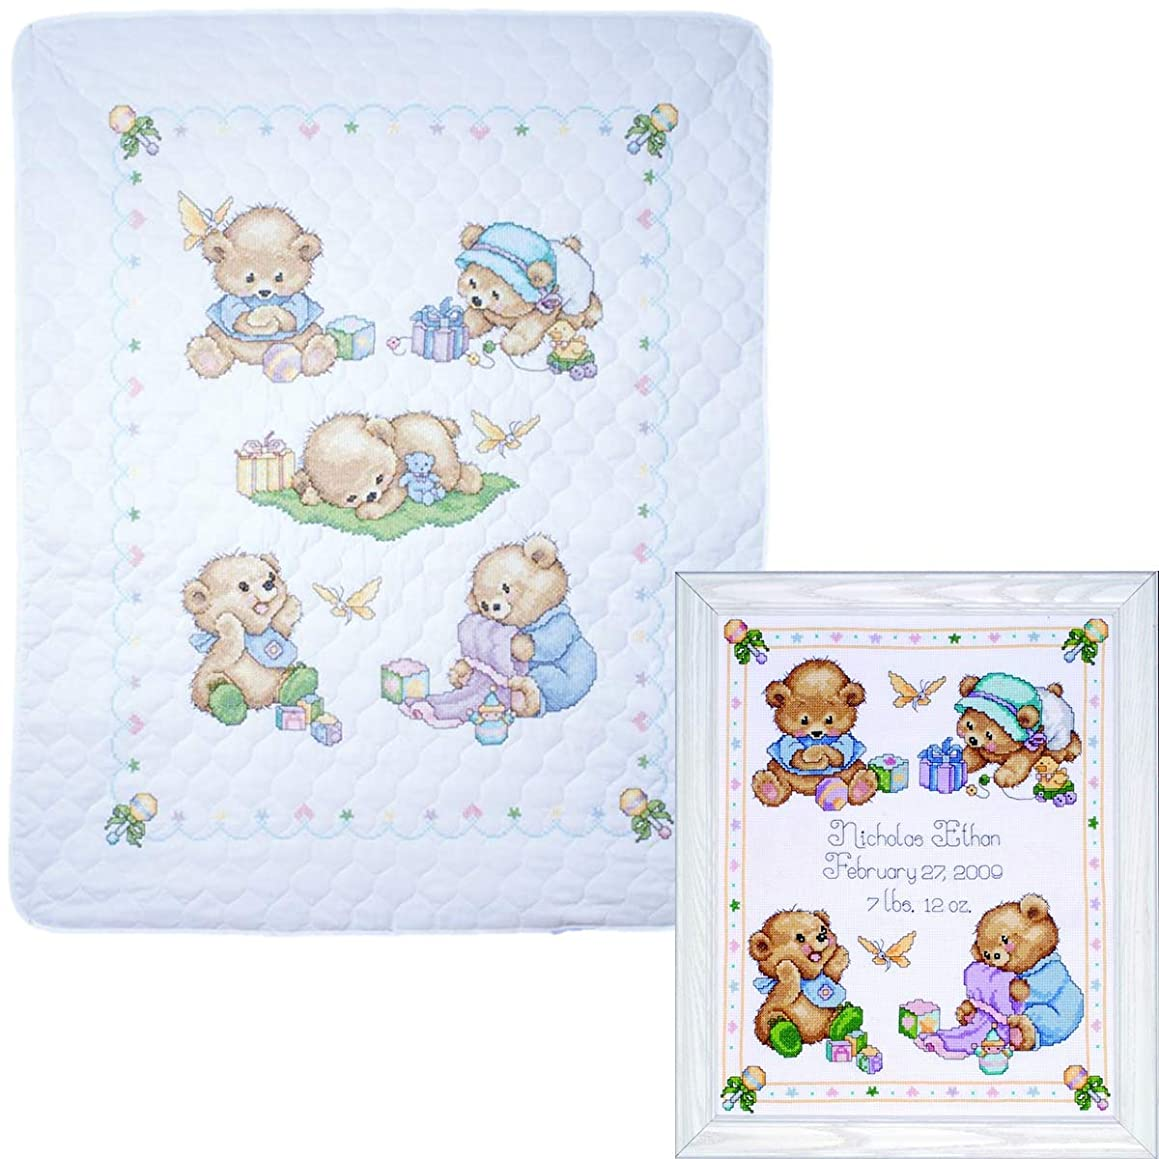 Tobin - Baby Bears Nursery Decor Cross Stitch - 2 Kits: Baby Bears Baby Quilt T21705 and Baby Bears Sampler T21711 with 2 Gift Cards